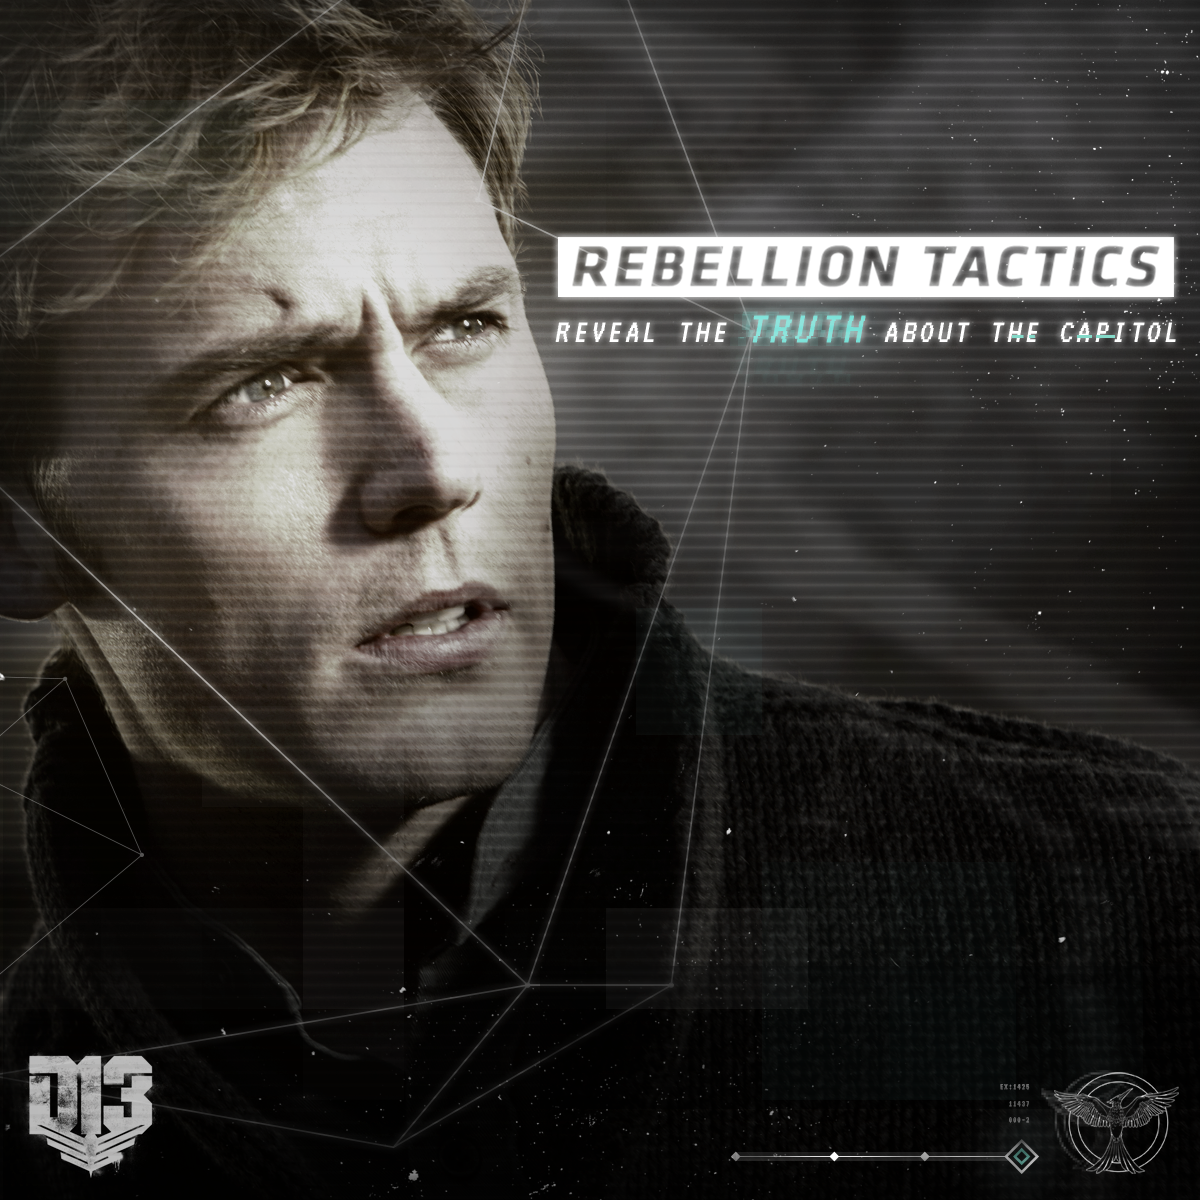 Rebellion_tactics_FIN2